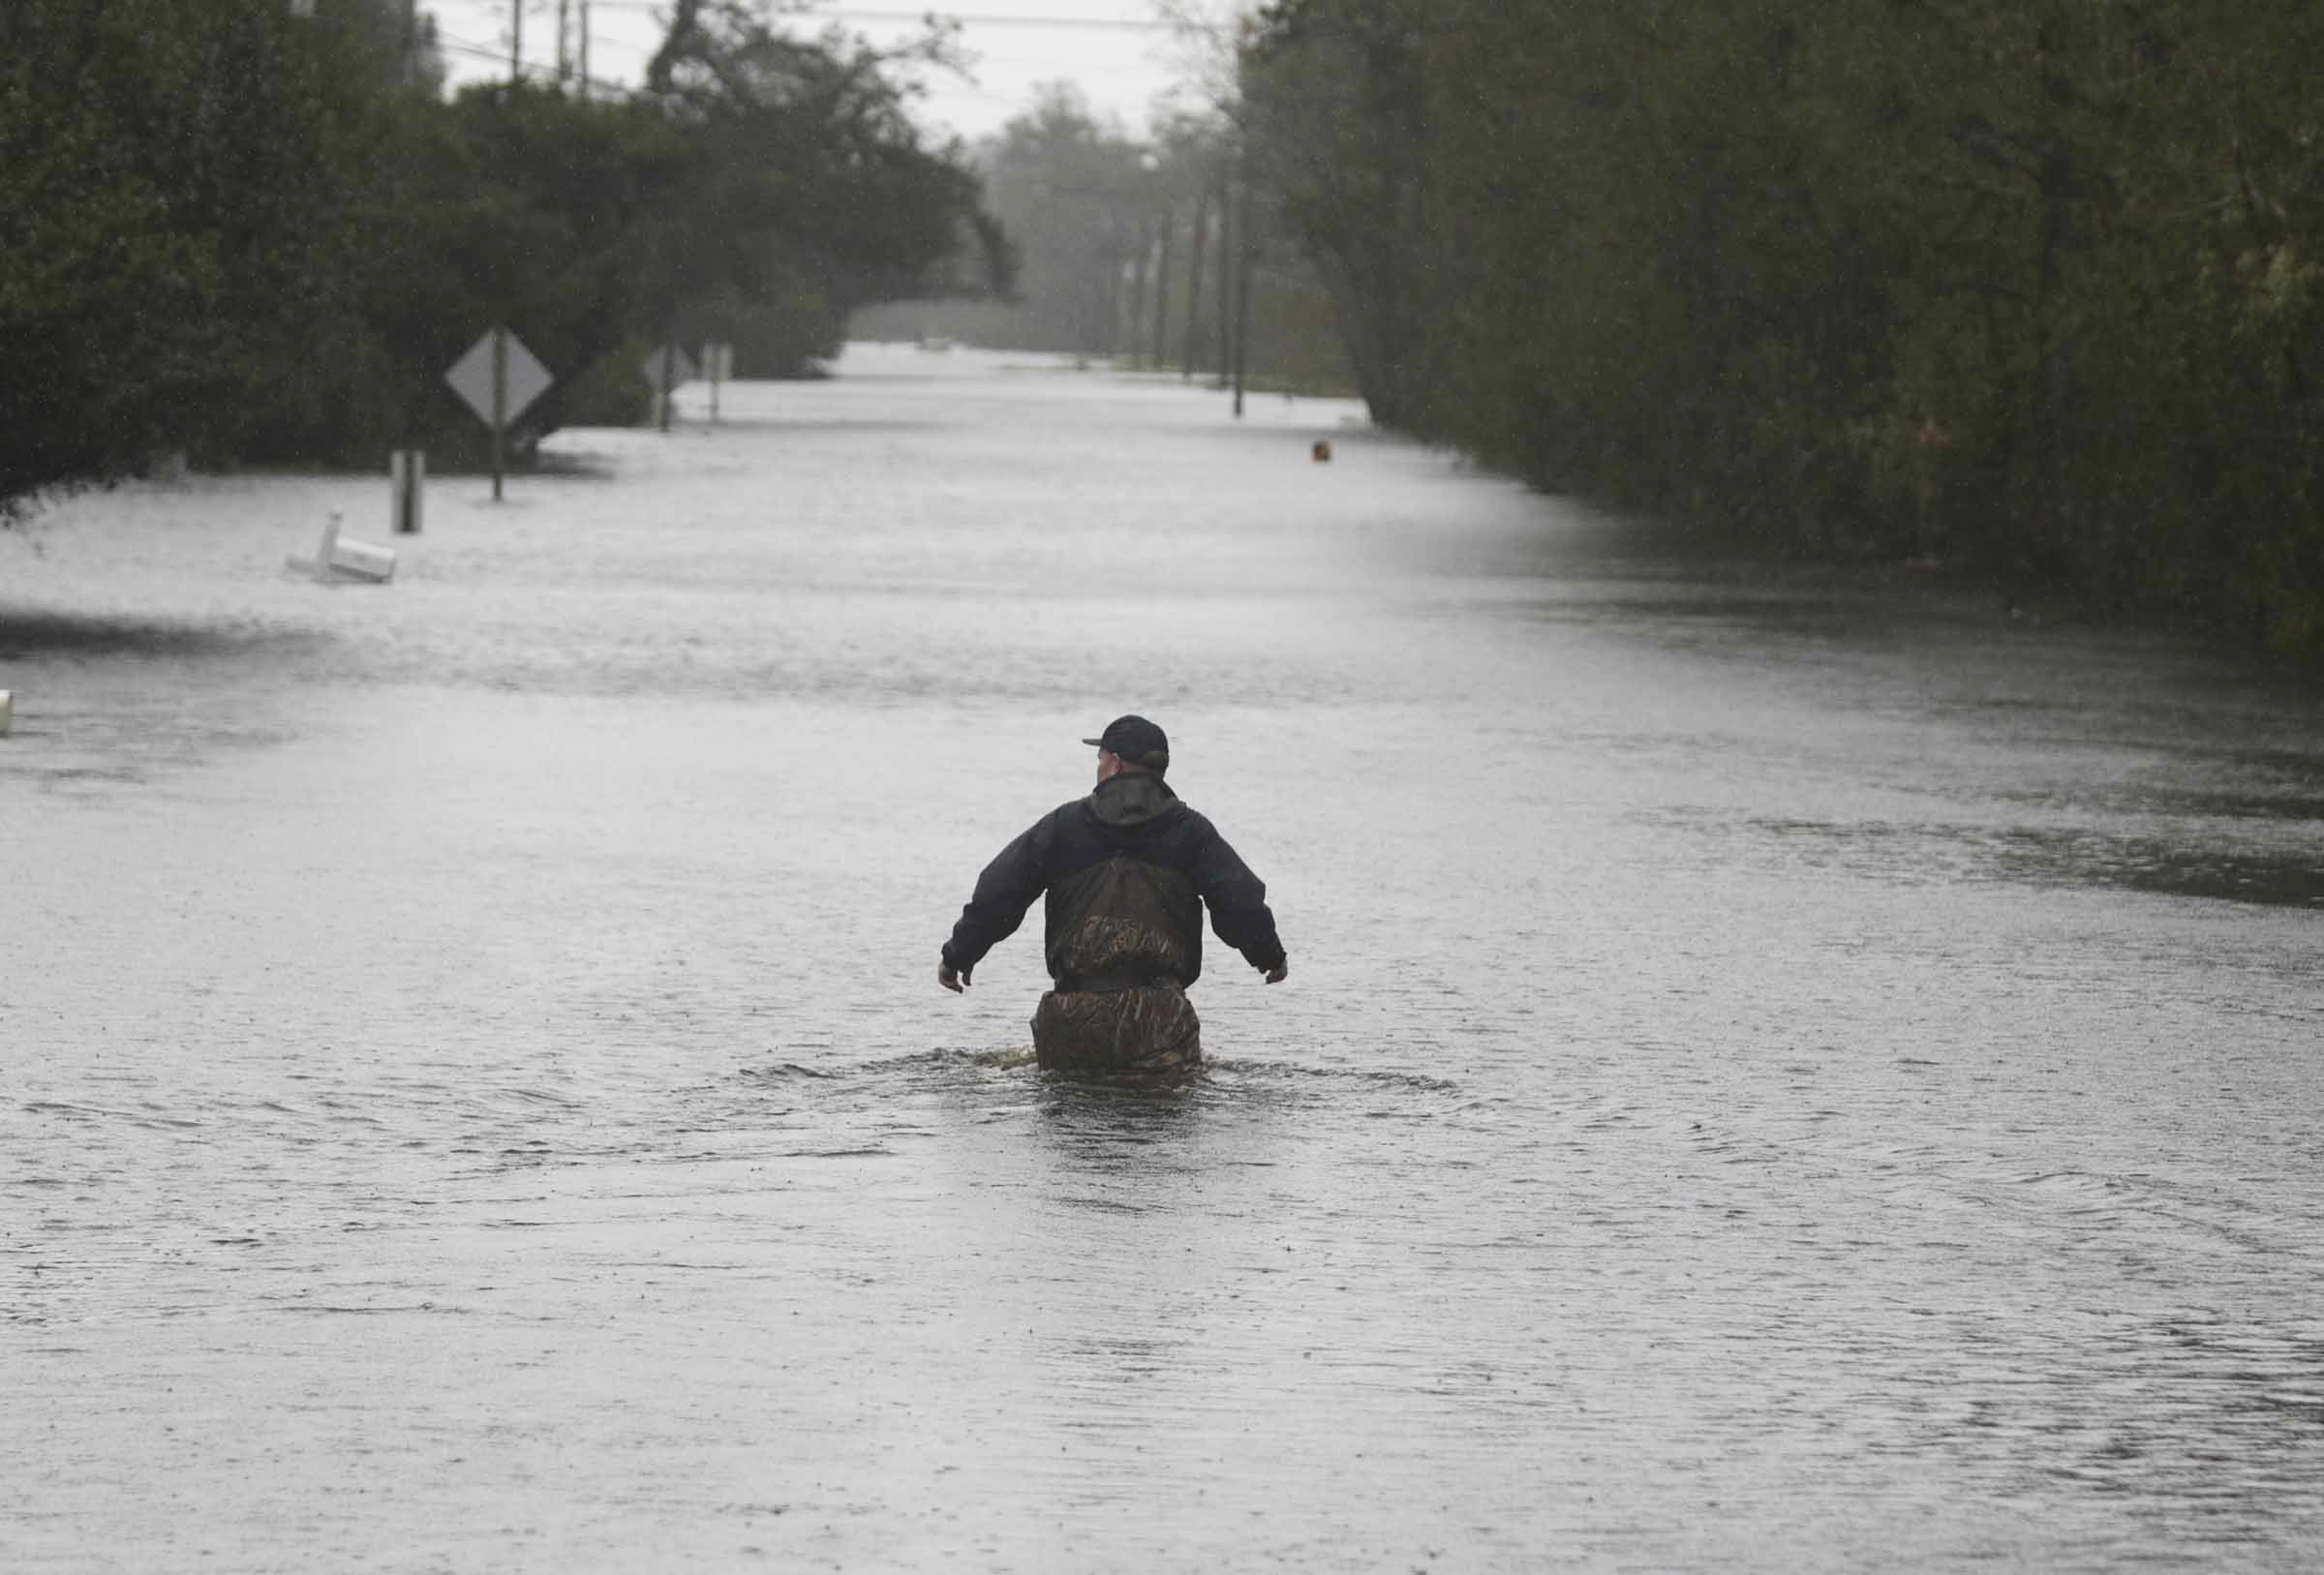 Reports: Wilmington among communities cut off by floodwaters